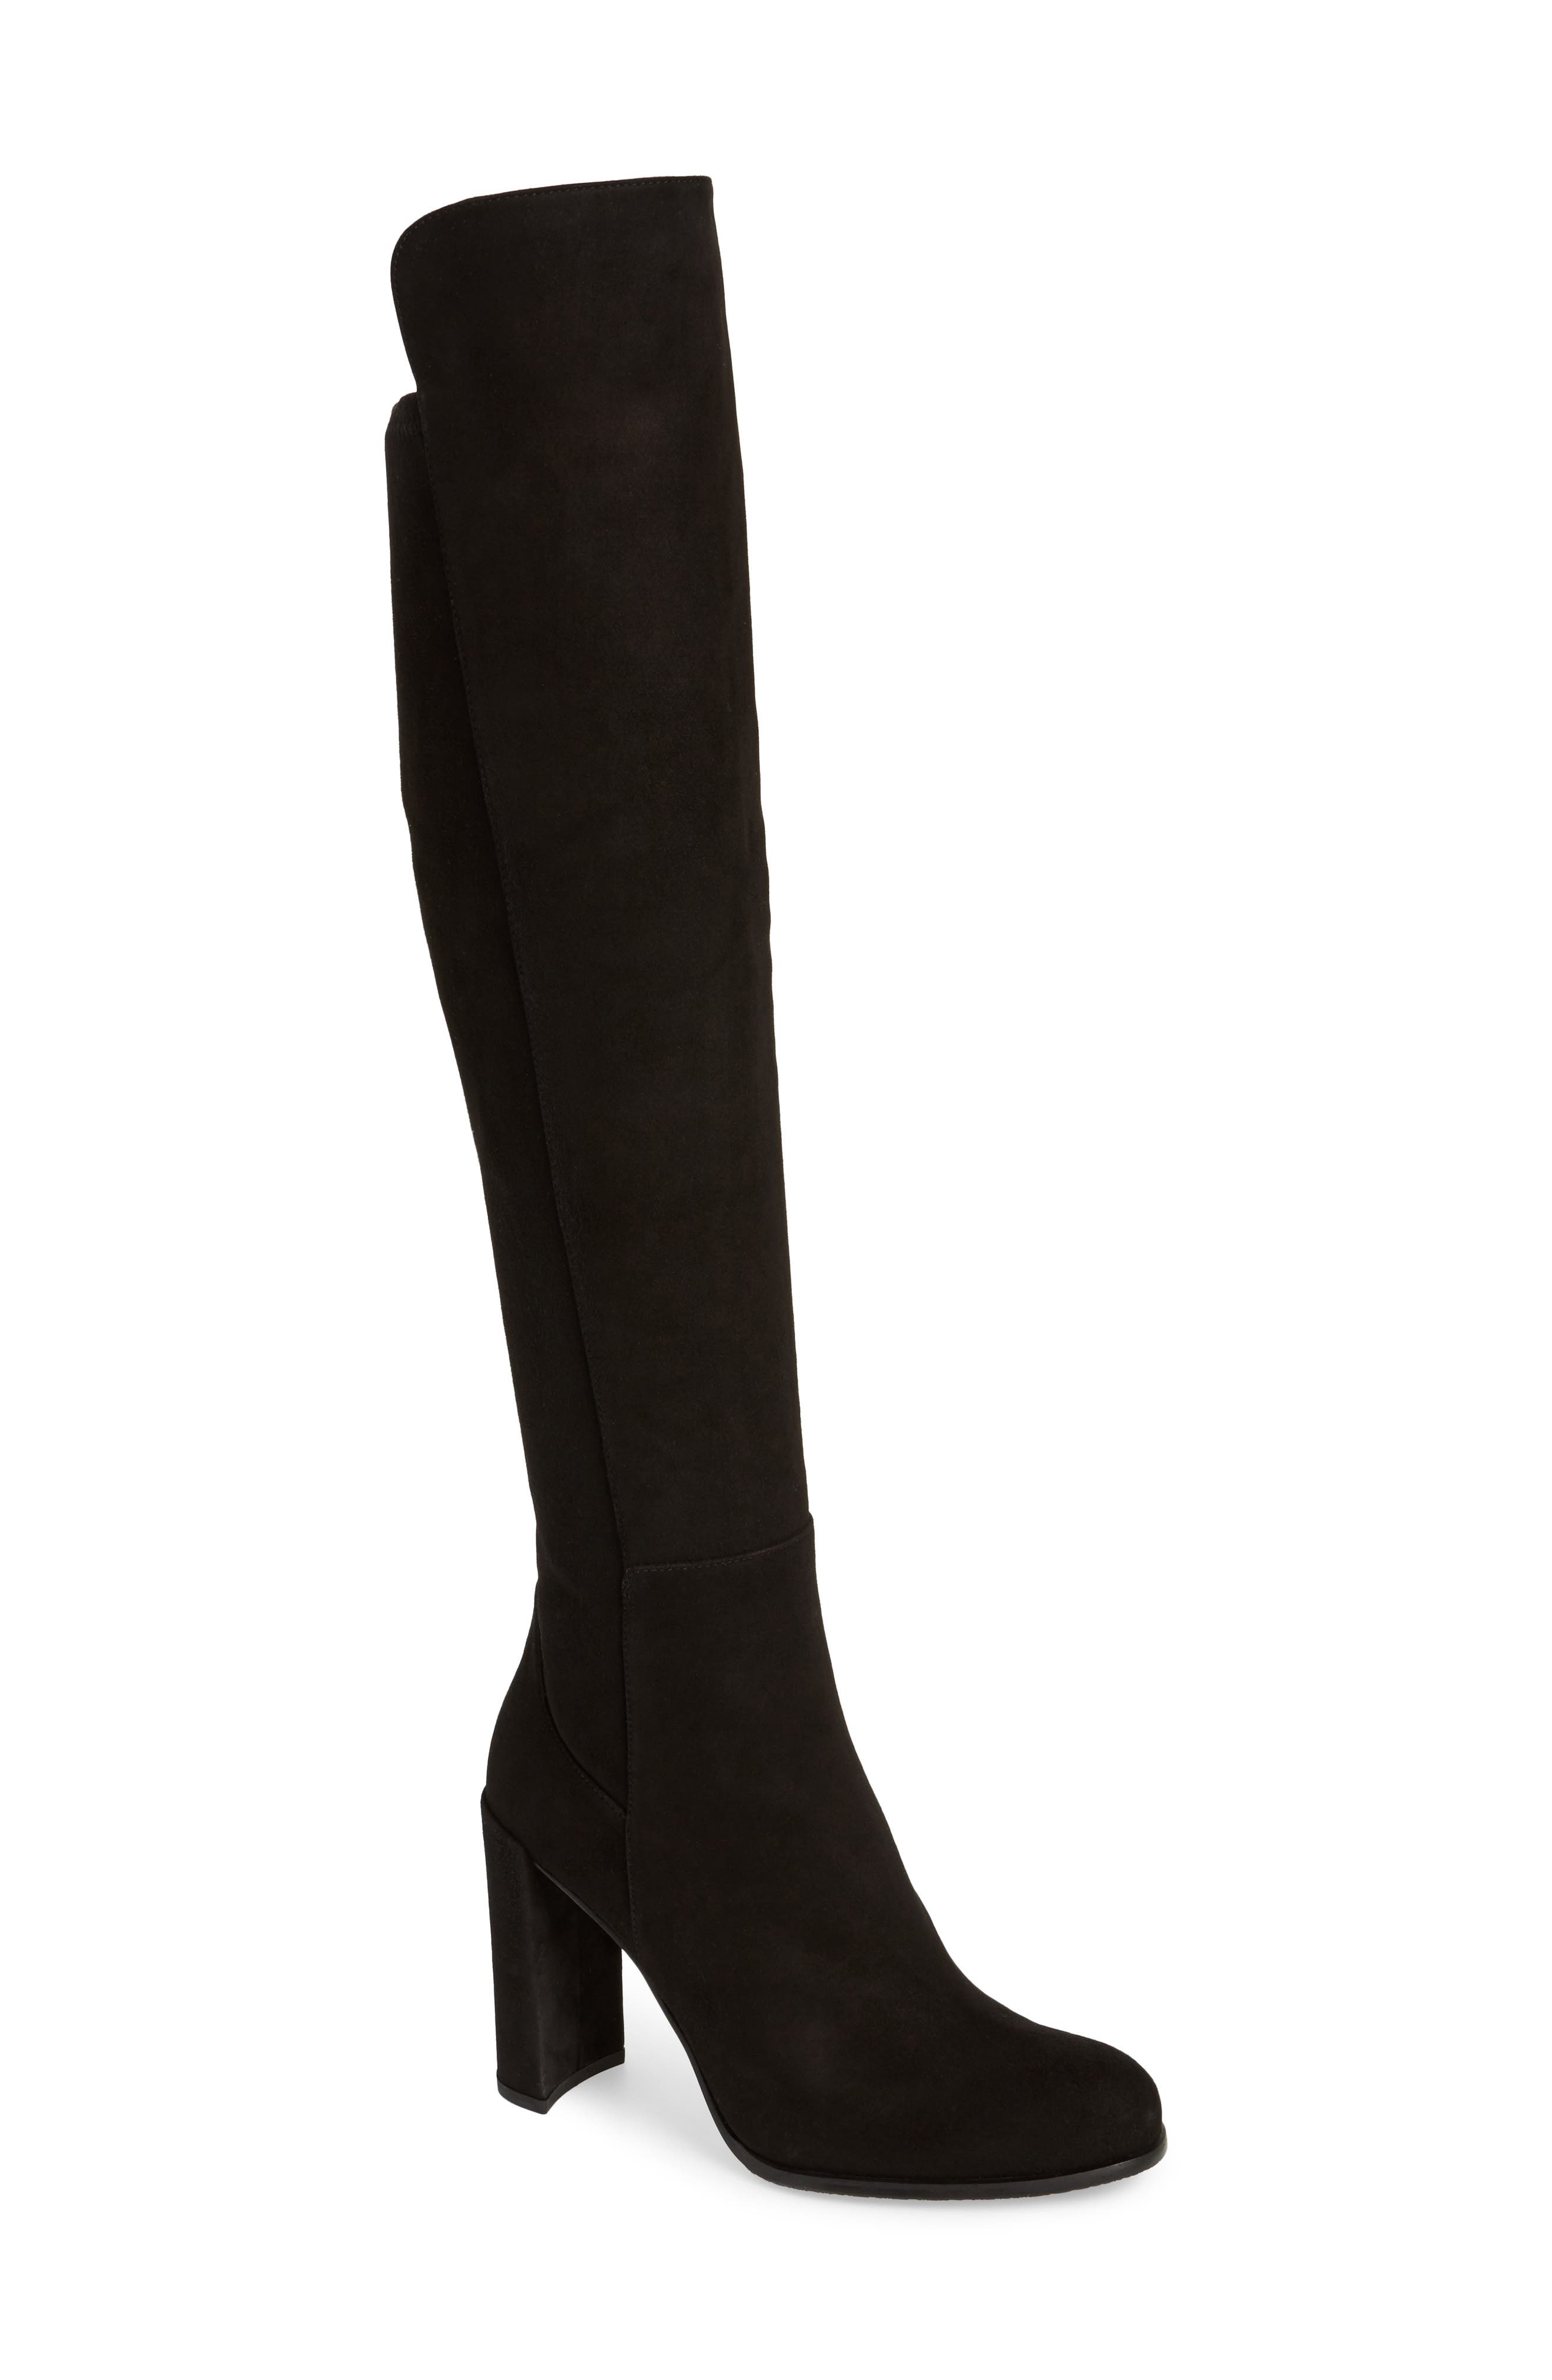 Alljill Over the Knee Boot,                             Main thumbnail 1, color,                             001